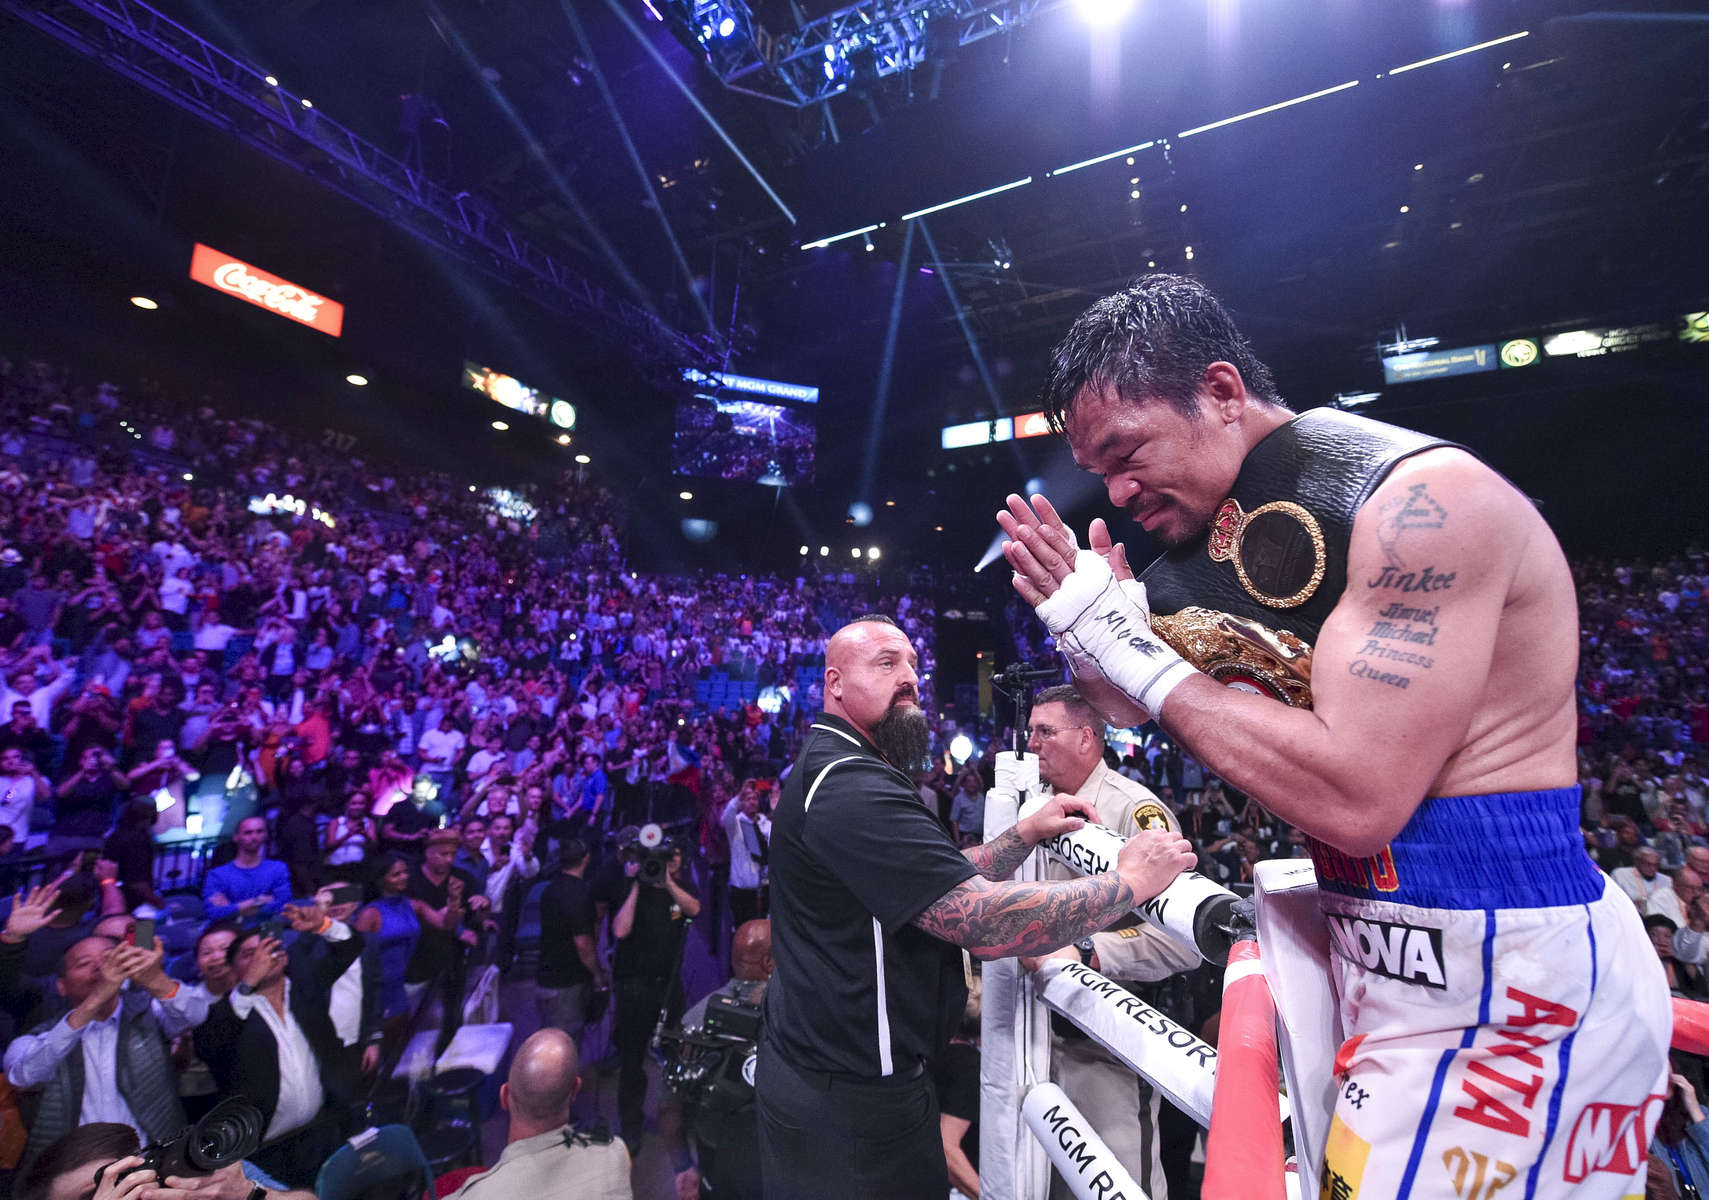 LAS VEGAS - JULY 20: Manny Pacquiao celebrates his victory over Keith Thurman during the FOX Sports PBC Pay-Per-View and PBC on Fox Fight Night at the MGM Grand Garden Arena on July 20, 2019 in Las Vegas, Nevada. (Photo by Stewart Cook/Fox Sports/PictureGroup)